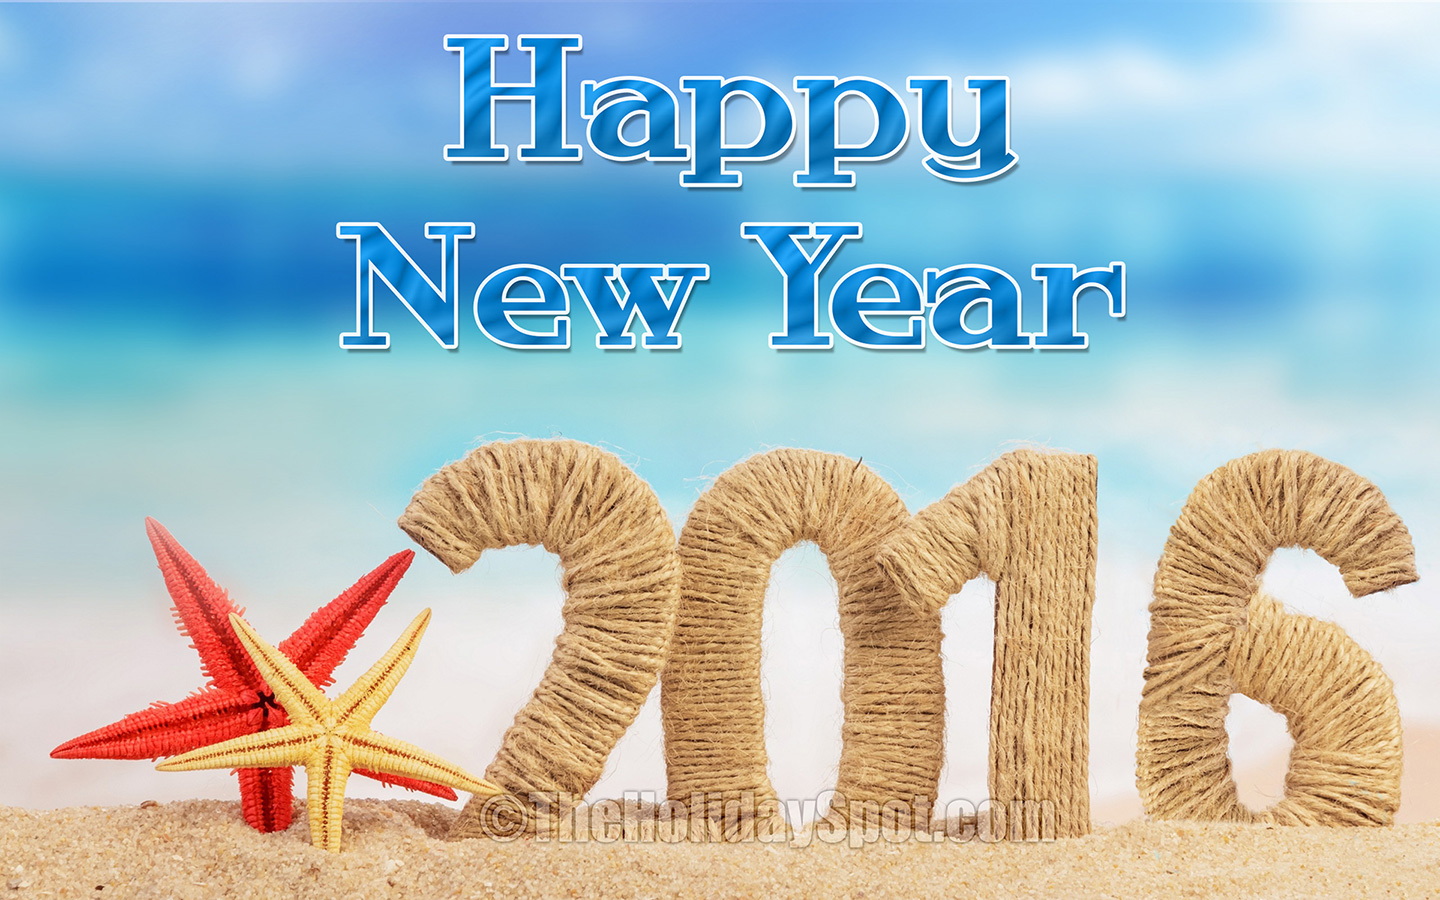 New year 2016 wallpapers for desktop widescreen mobile for New design wallpaper 2016